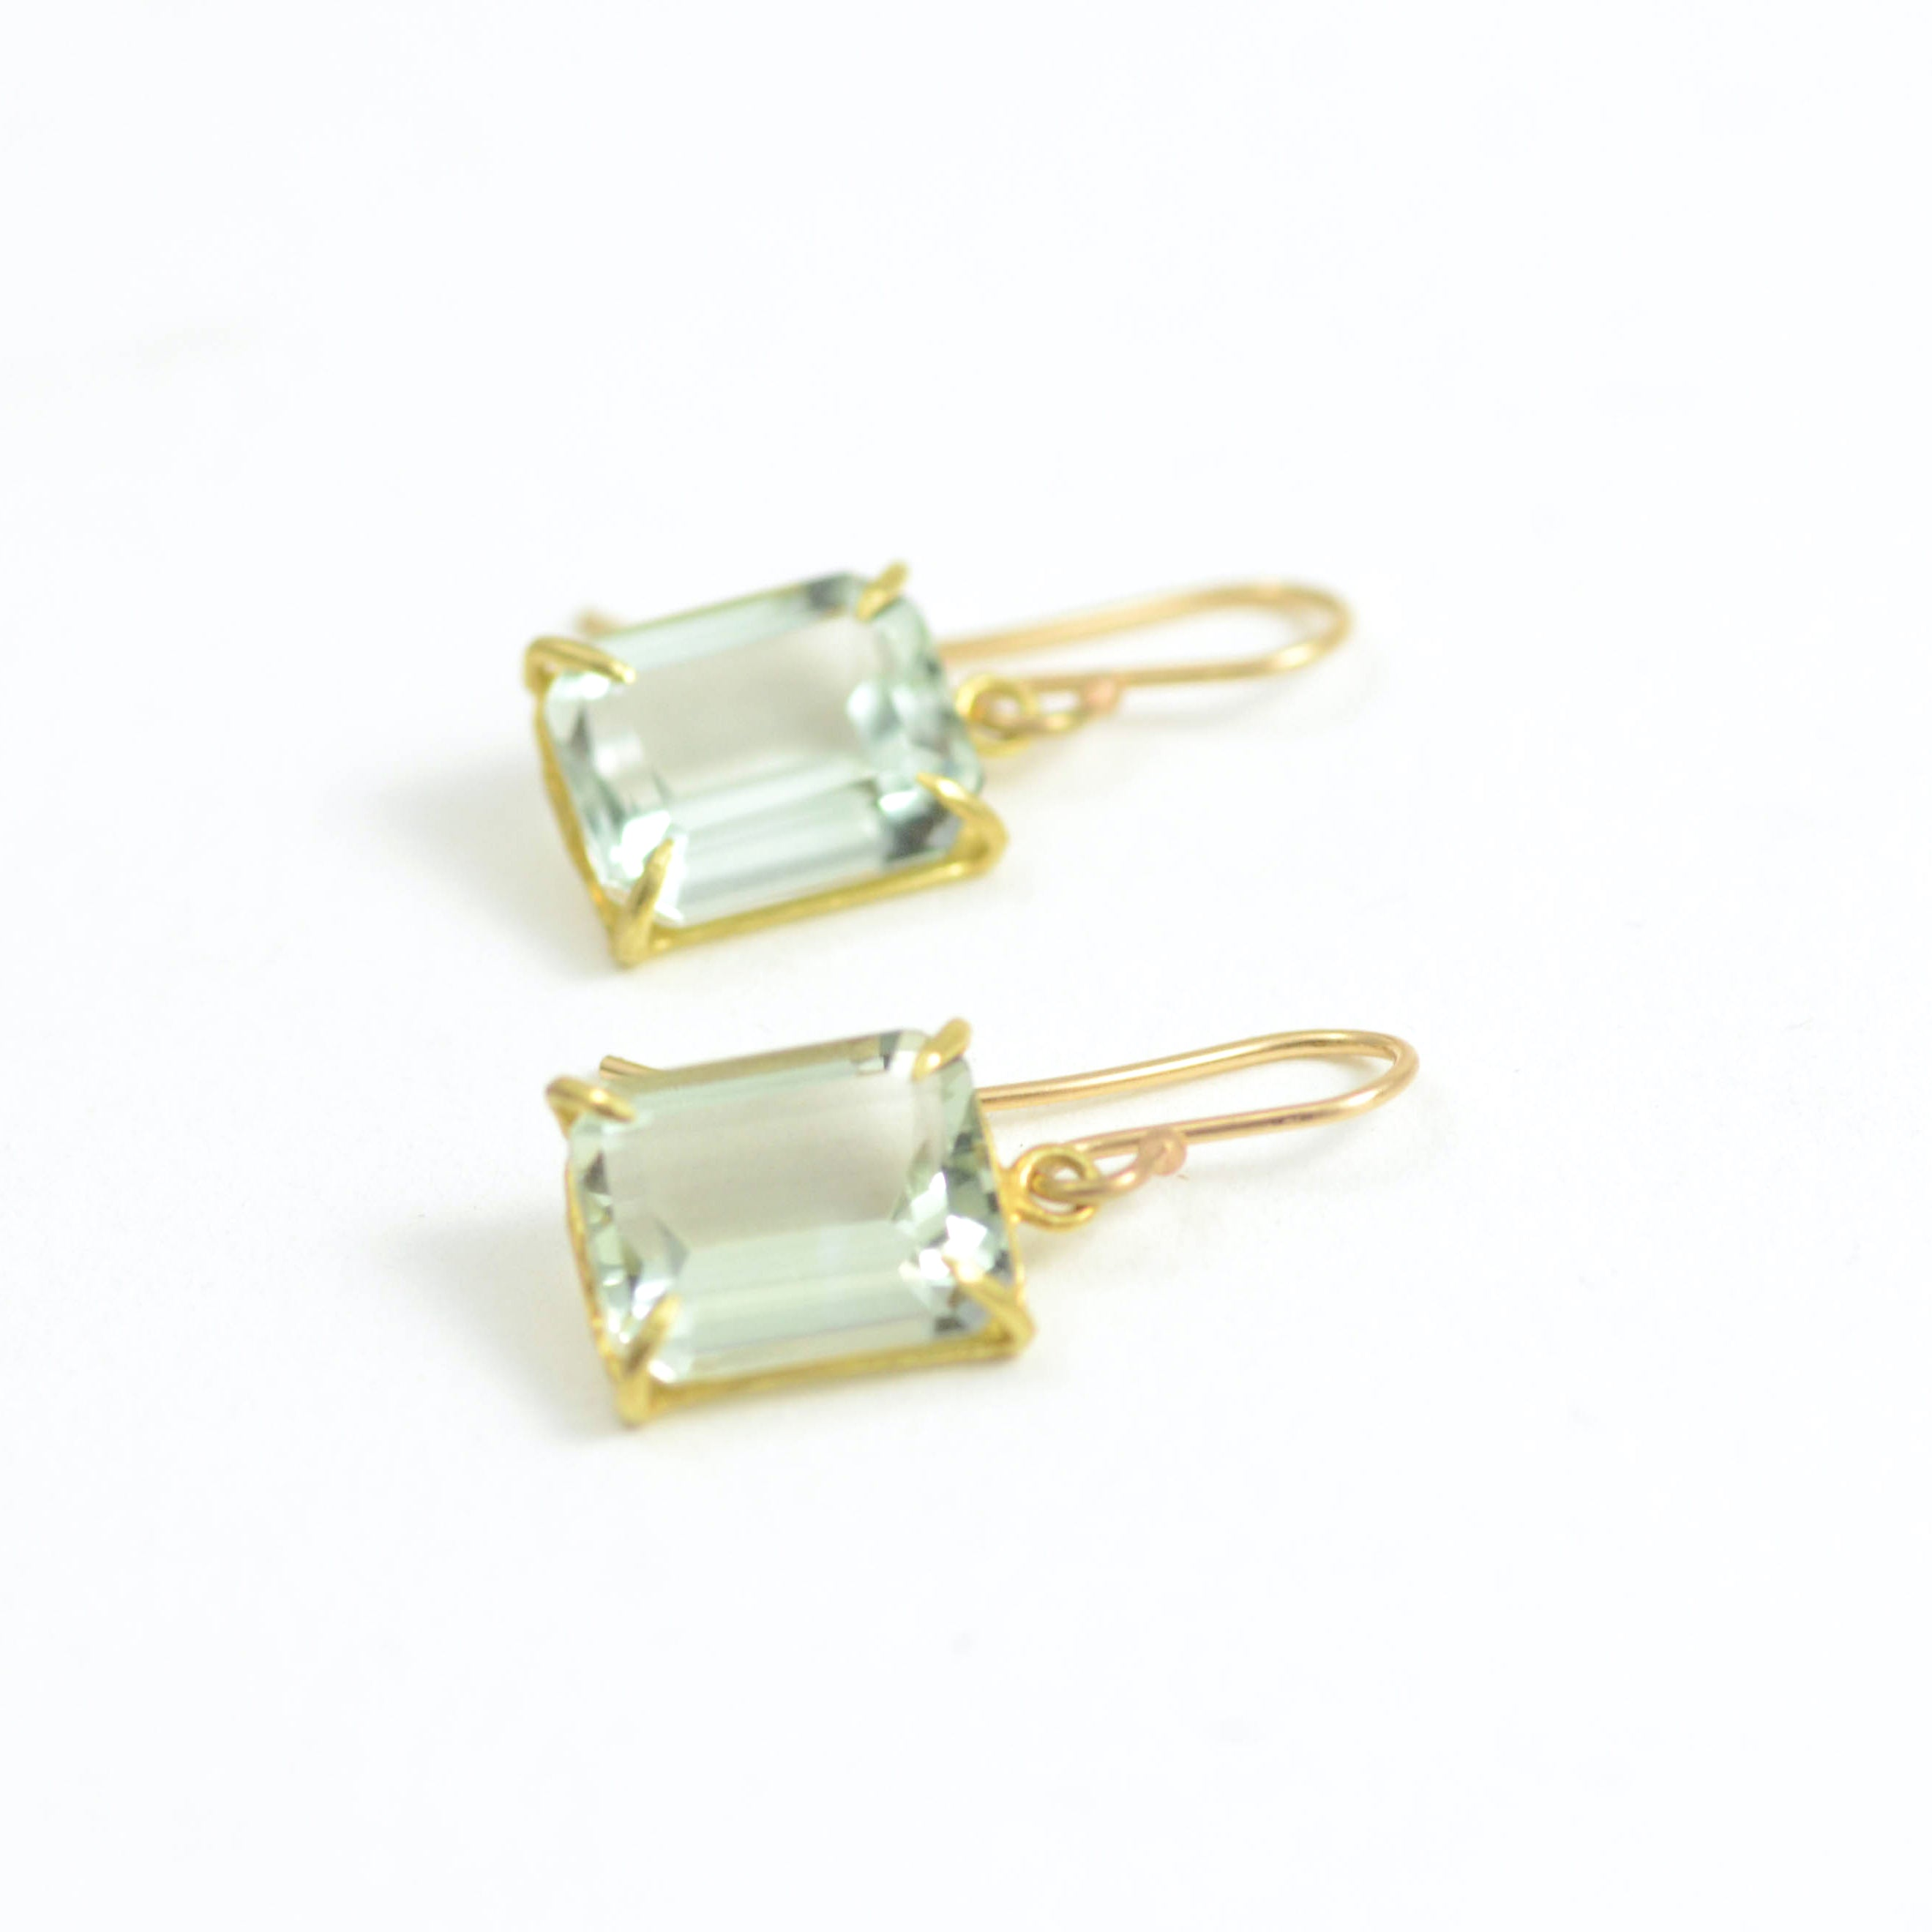 small emerald cut green amethyst in 18kt yellow gold on French wire. Also available in other stones.